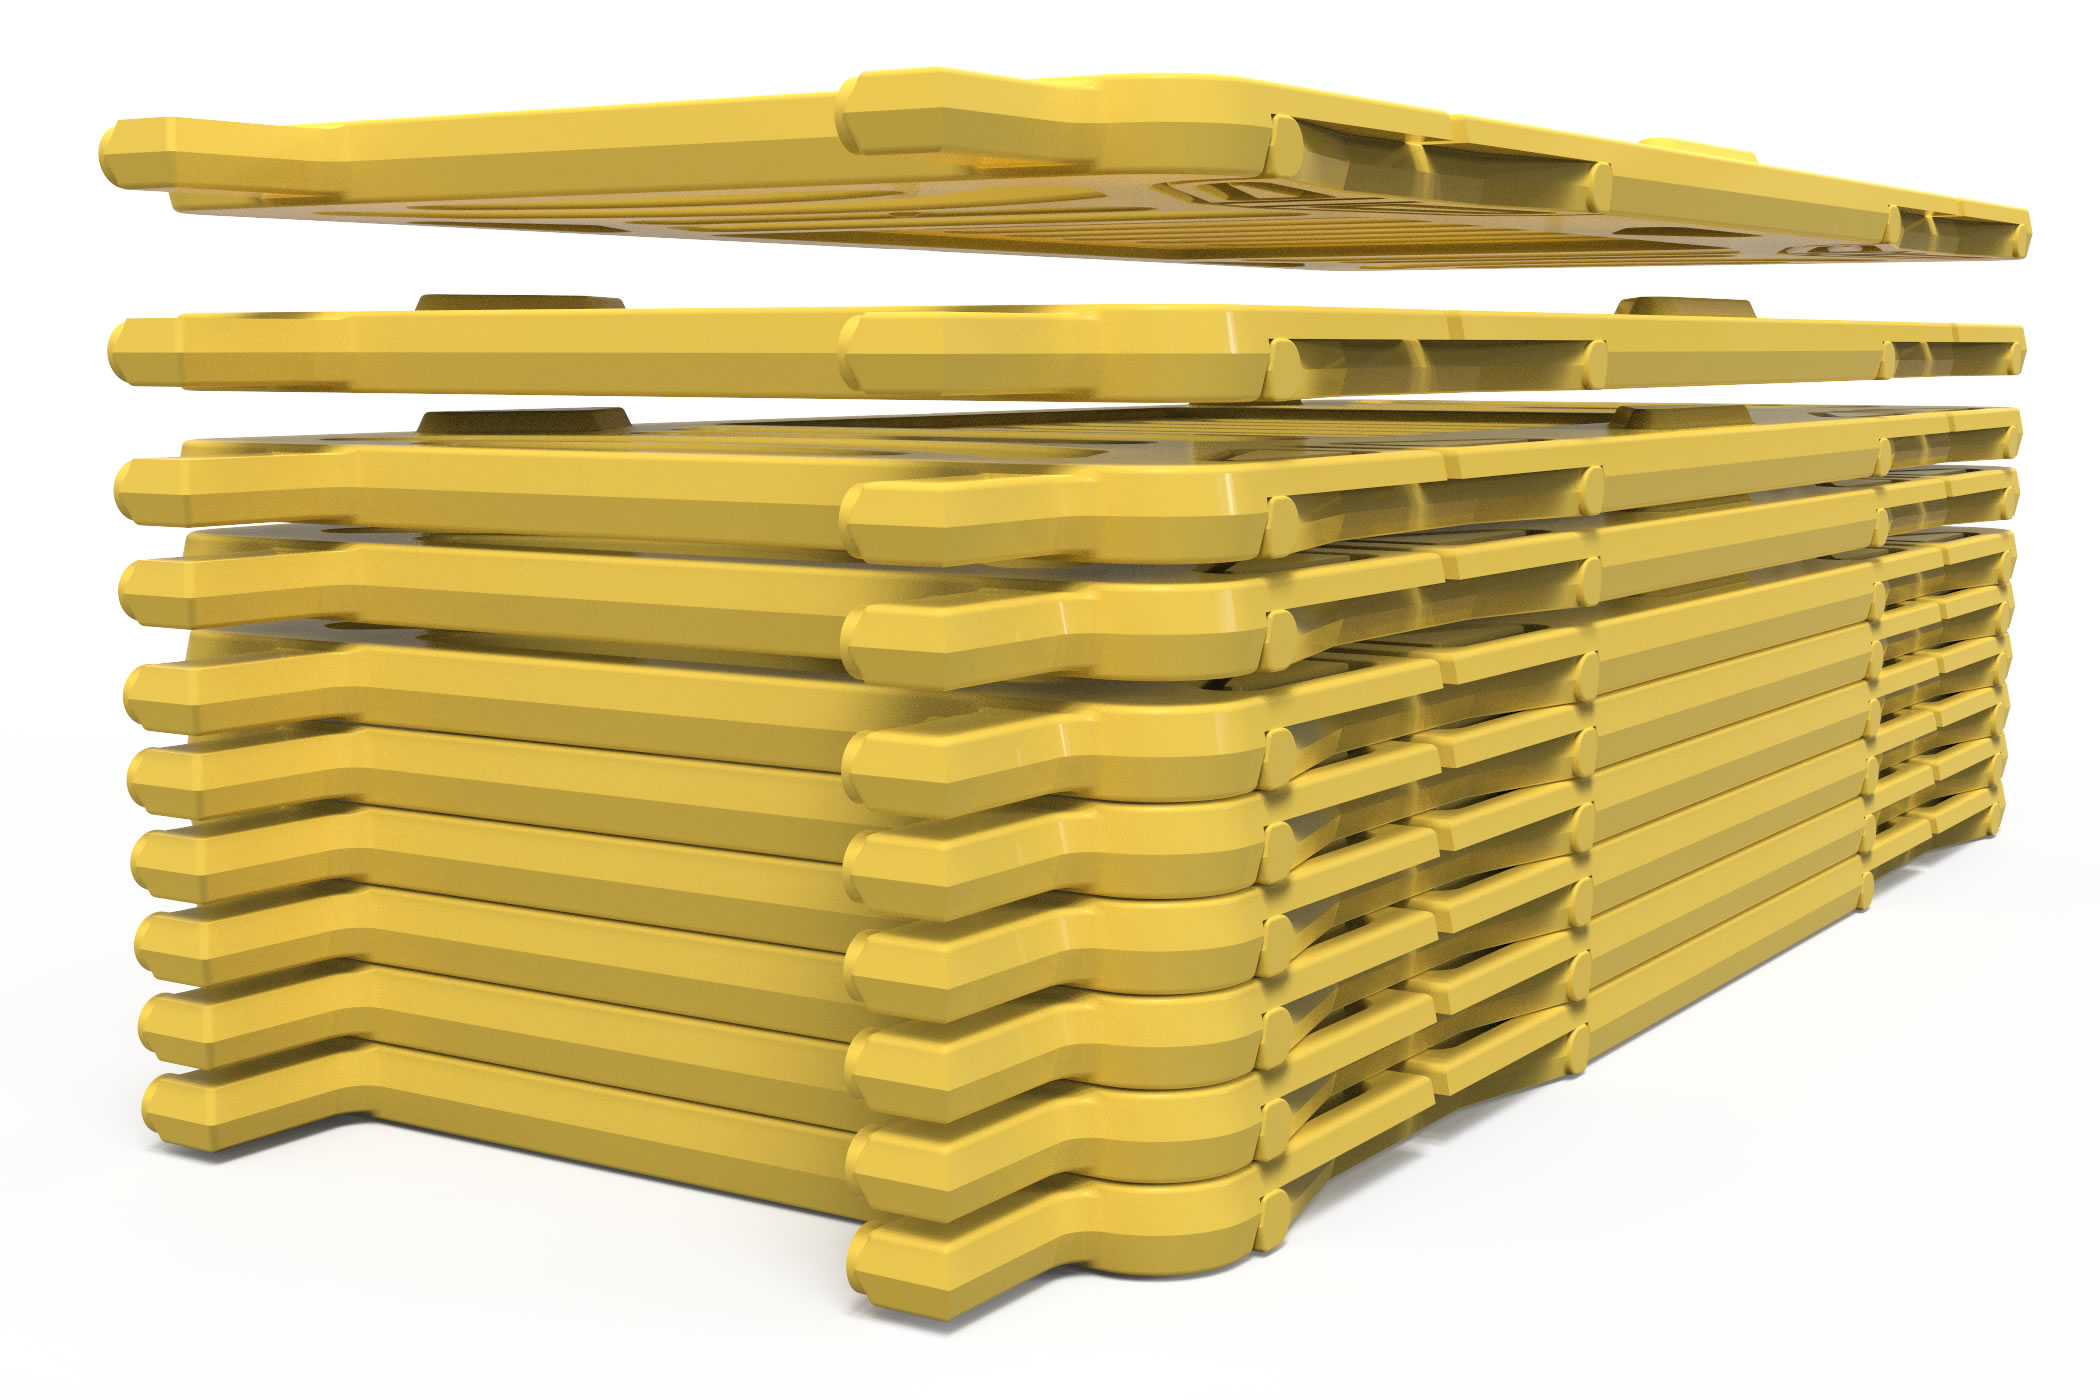 Stacking Crowd Control Barriers on a pallet